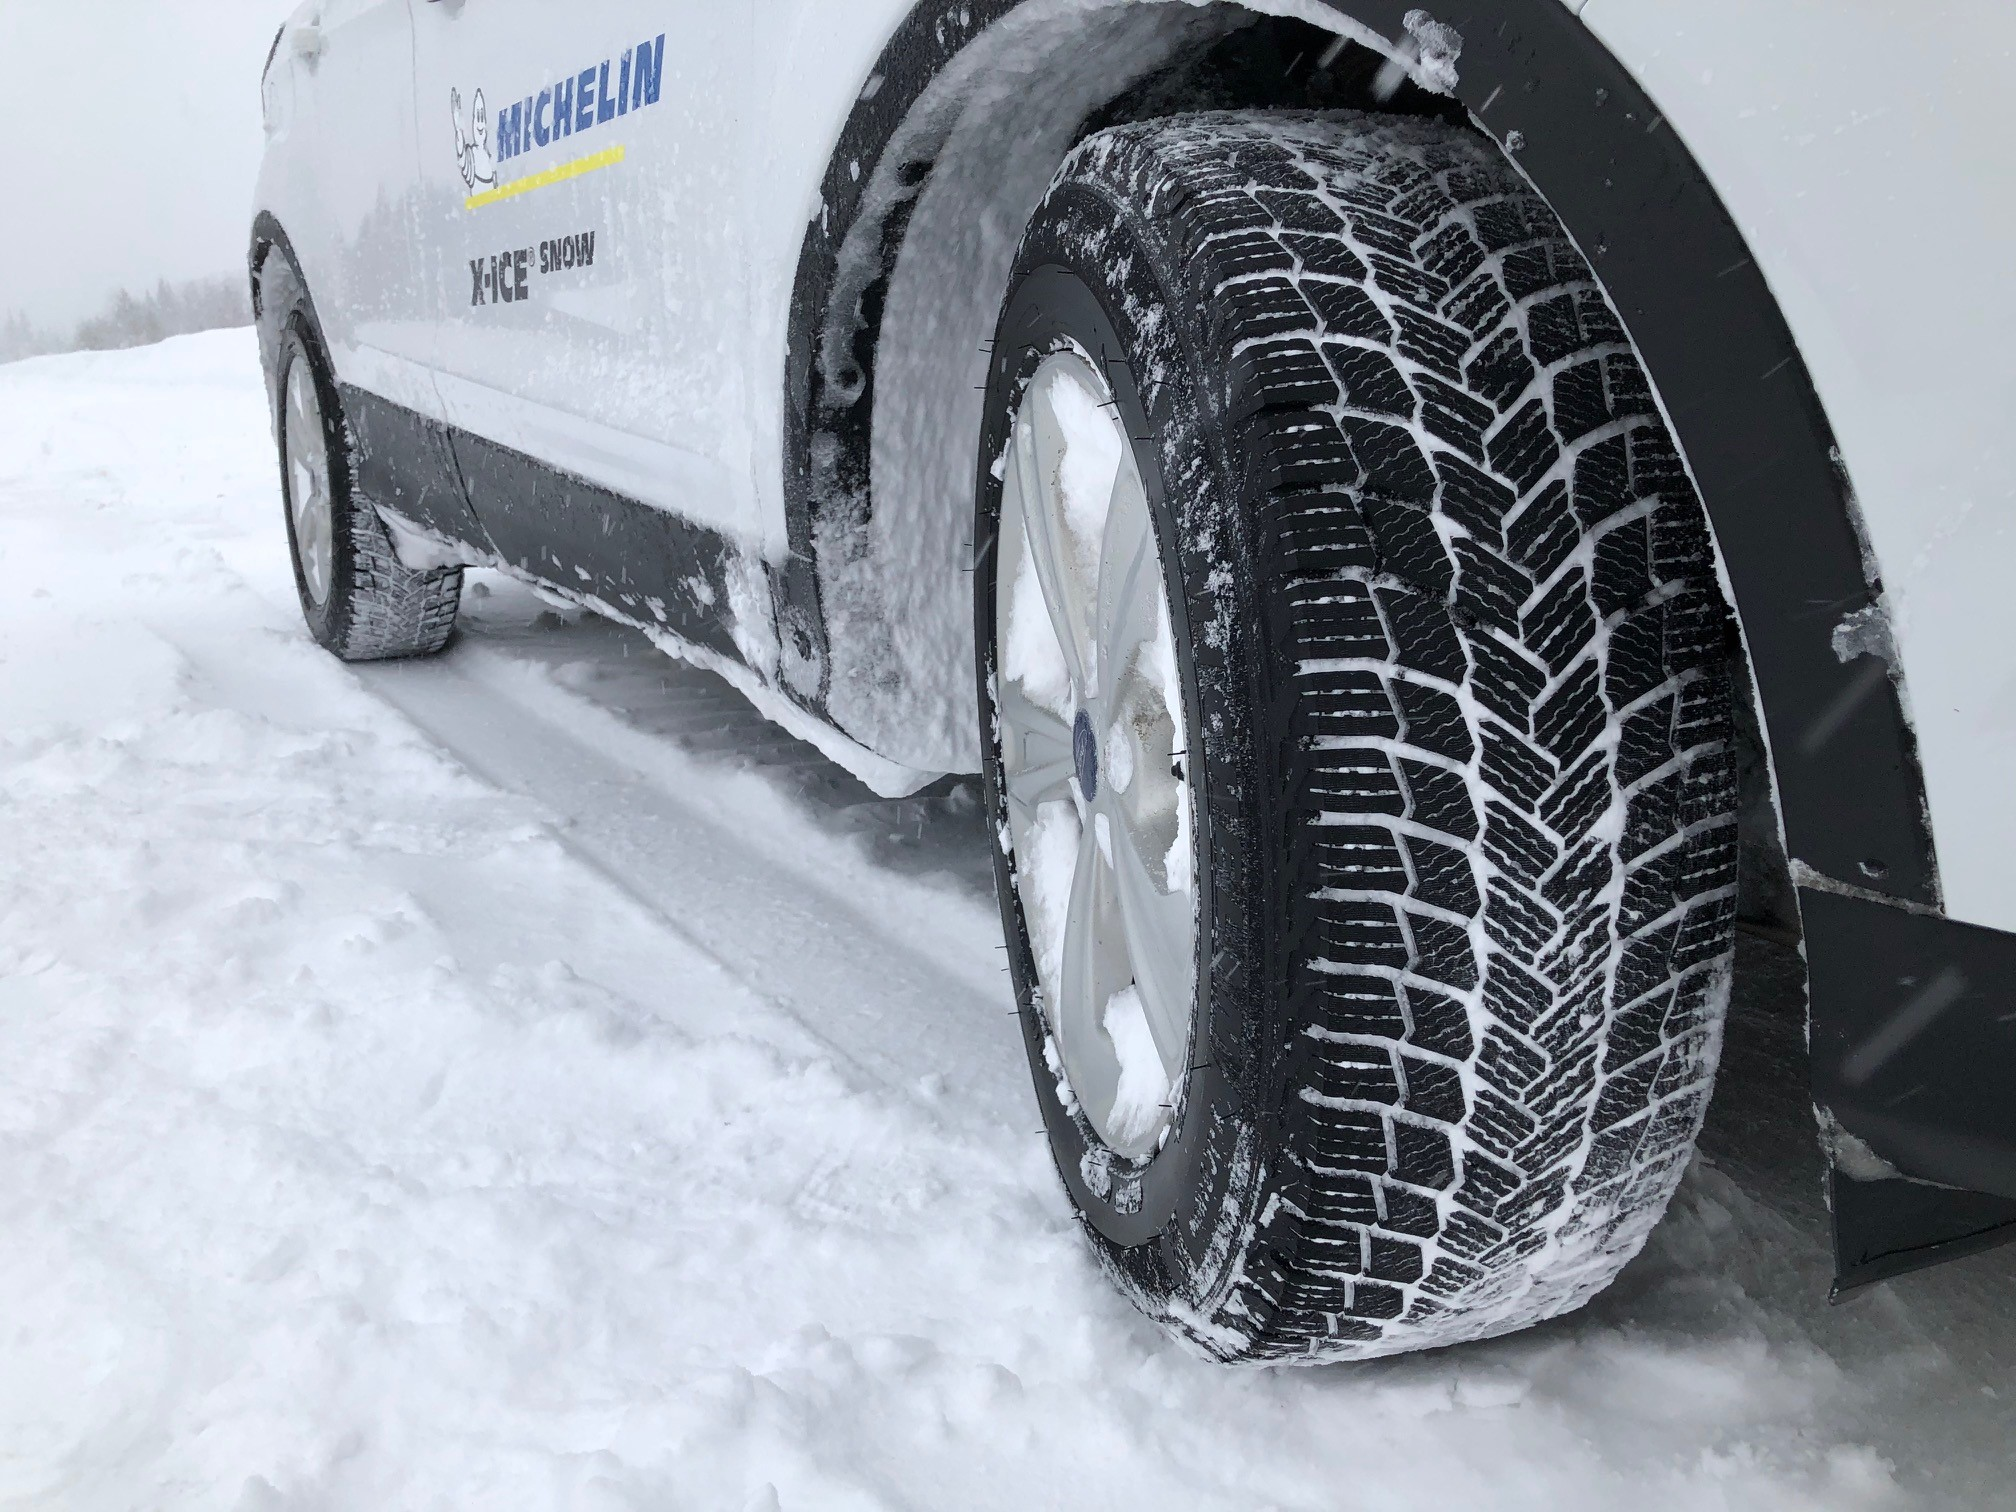 Michelin Refreshes Winter Tire Line With New X-Ice Snow Tire